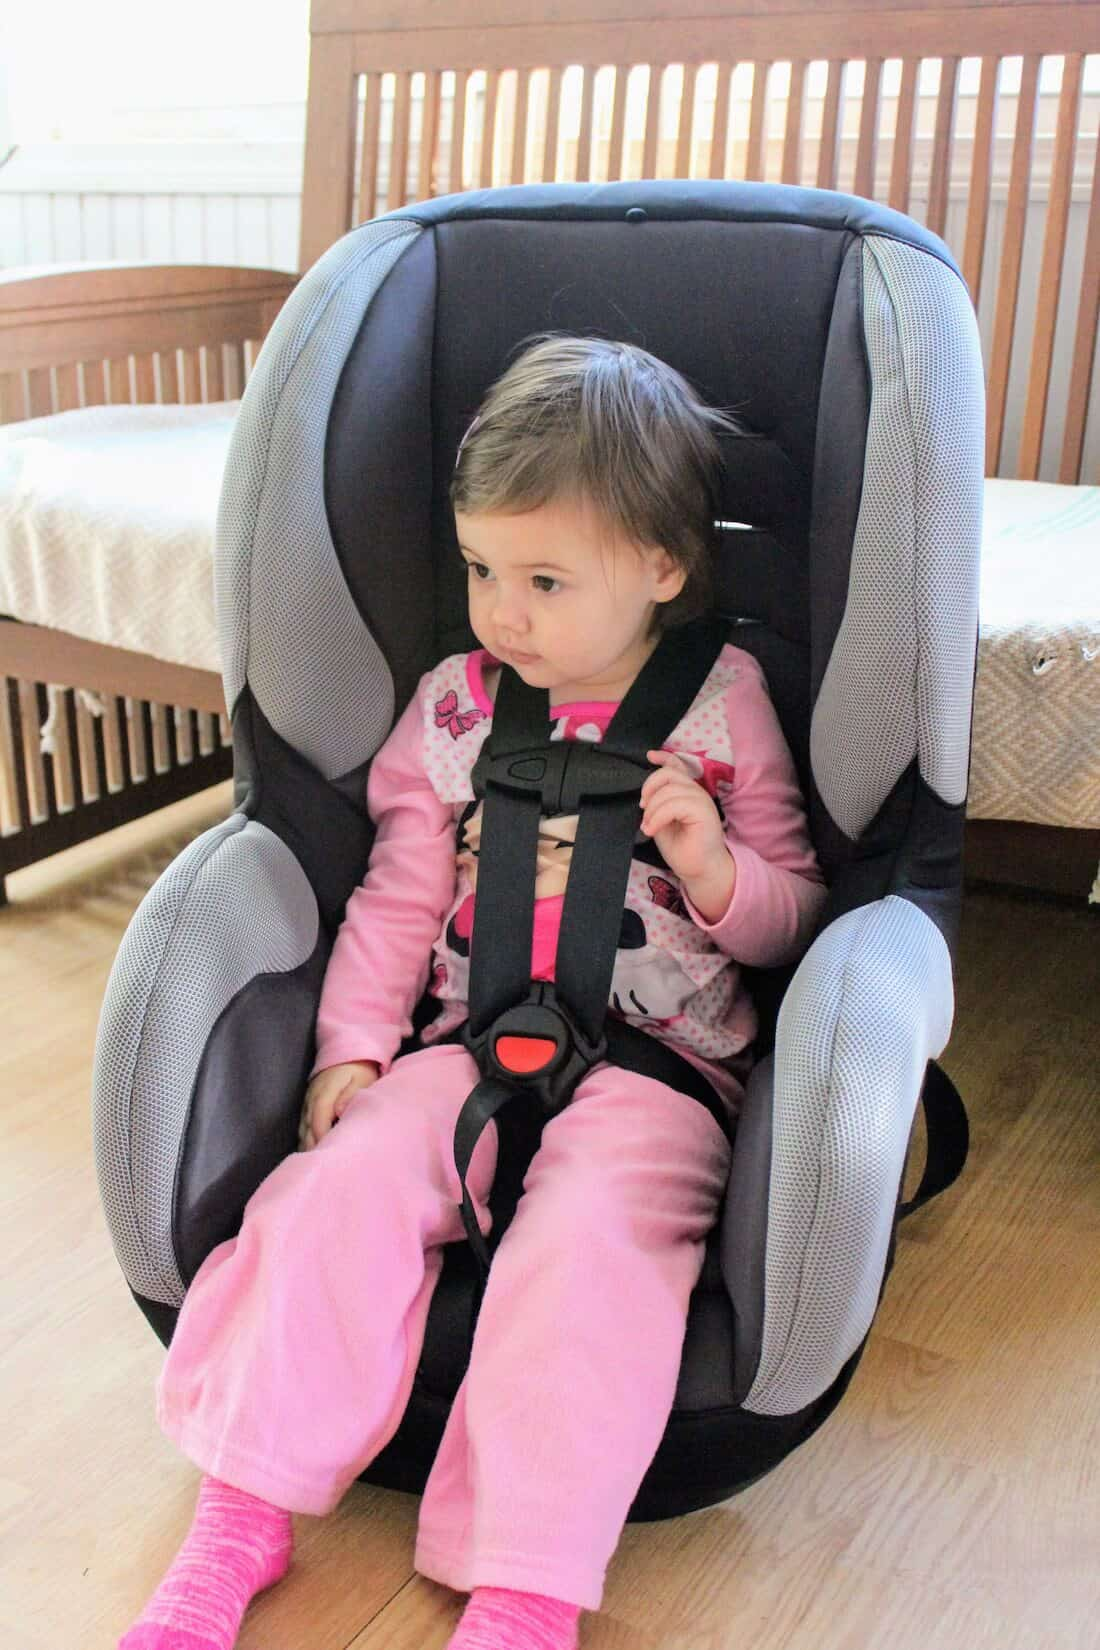 Toddler girl is strapped into carseat.